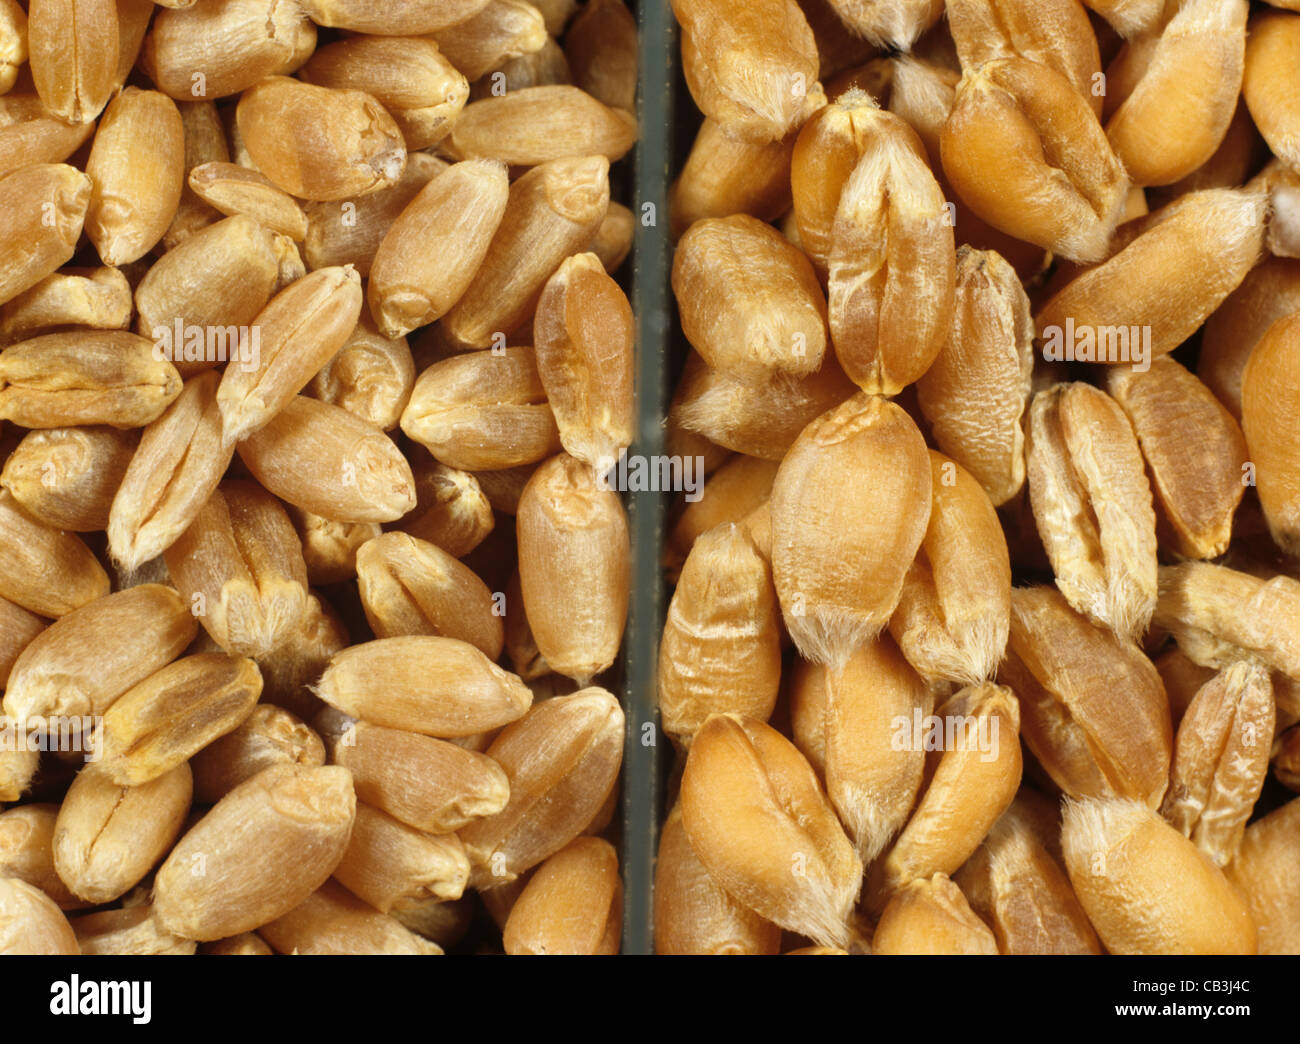 English winter milling wheat (left) compared to Canadian Western red spring milling wheat (right) - Stock Image